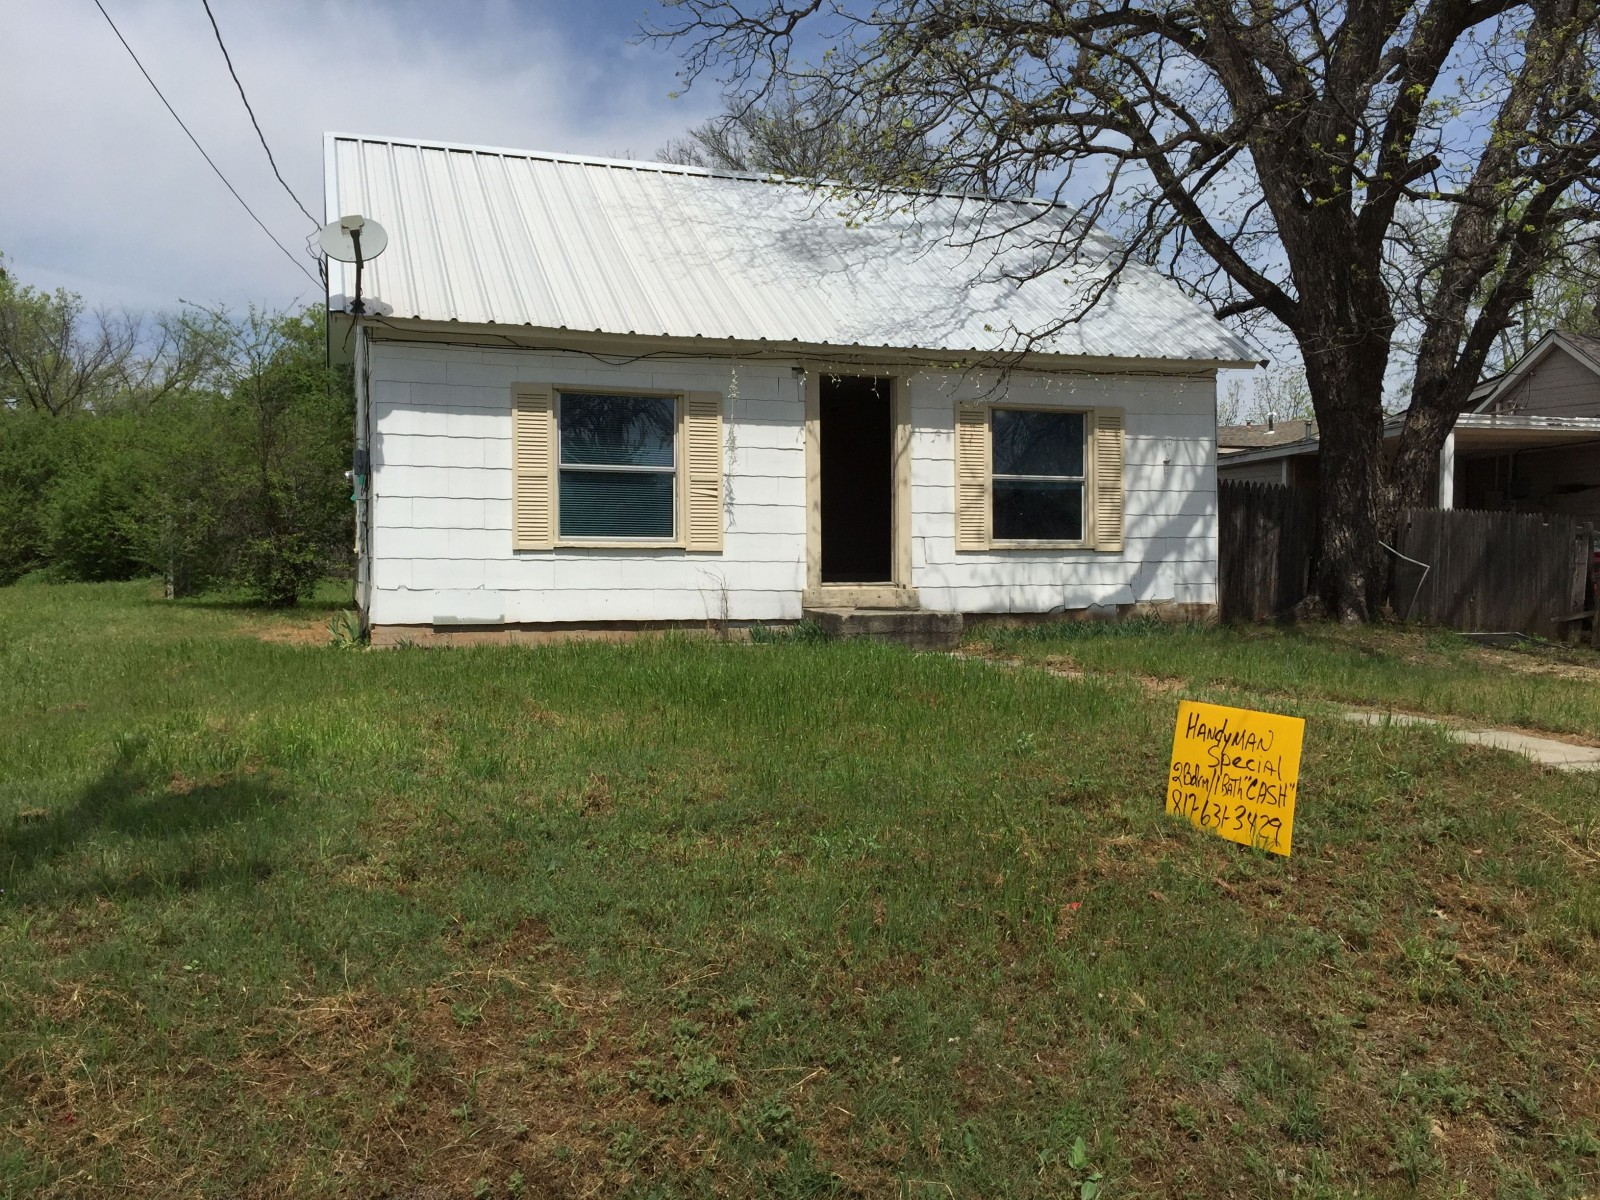 landlord special, weatherford investment property, fixer upper, handyman special